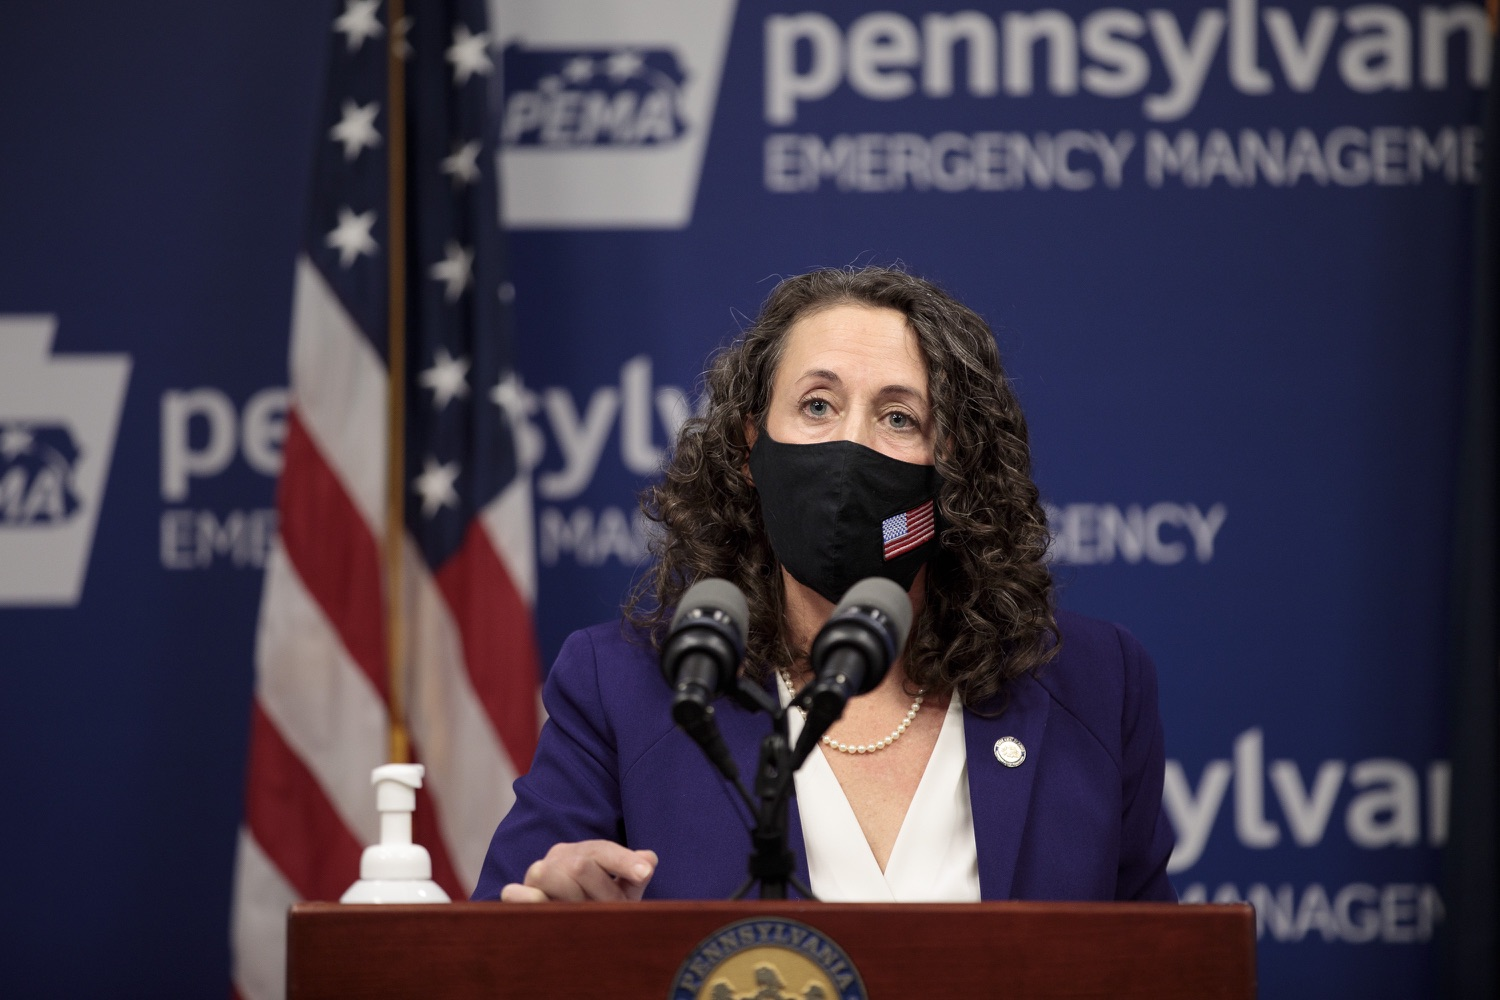 """<a href=""""https://filesource.wostreaming.net/commonwealthofpa/photo/18465_gov_electoralCollege_dz_10.jpg"""" target=""""_blank"""">⇣Download Photo<br></a>Secretary of the Commonwealth of Pennsylvania Kathy Boockvar speaking at the press conference.  With Congress preparing to count Electoral College votes today, Governor Tom Wolf was joined by Secretary of State Kathy Boockvar and Philadelphia City Commissioner Al Schmidt to emphasize that Pennsylvania had a free, fair and secure election. All efforts by Congressional Republicans to overthrow the election results and subvert the will of the voters are disgraceful and must be rejected. Harrisburg, PA  January 6, 2021"""